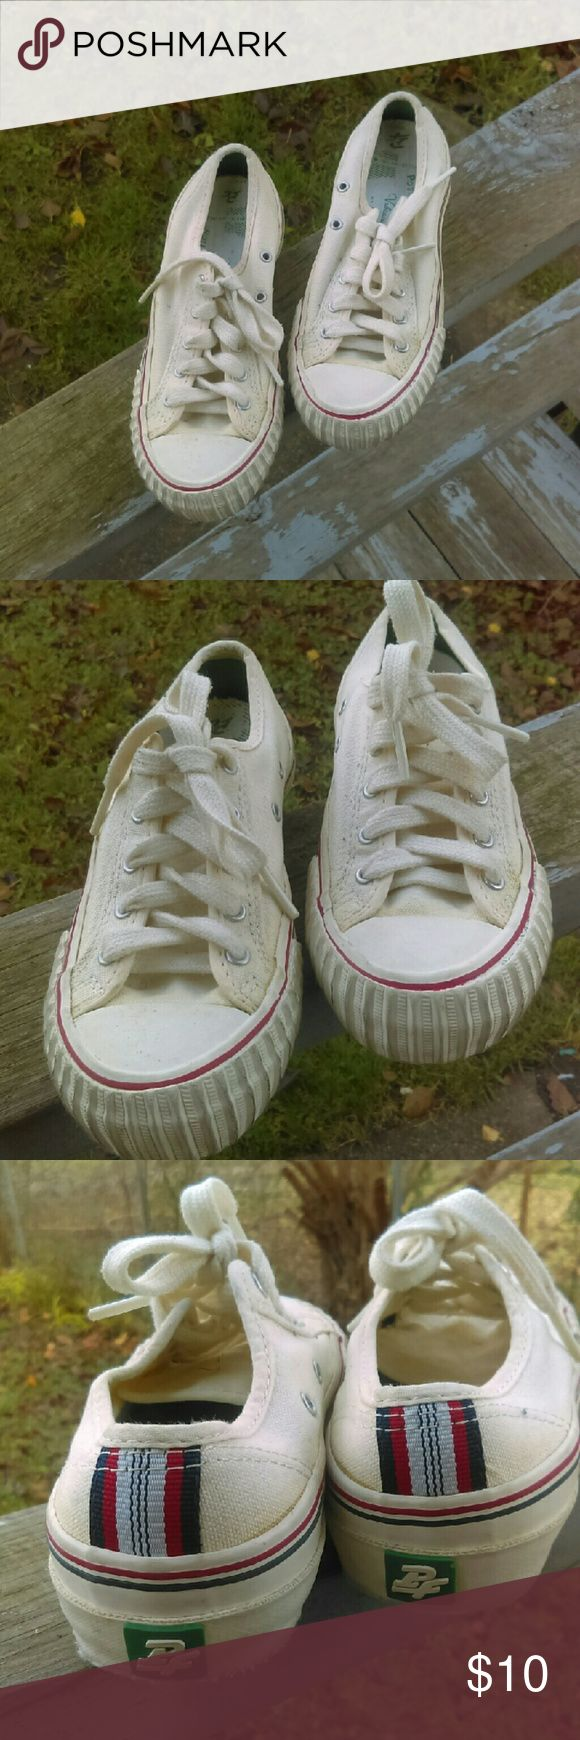 PF Flyers , Low Tops PF Flyer Low tops Off white color Great condition. pF Flyers Shoes Sneakers